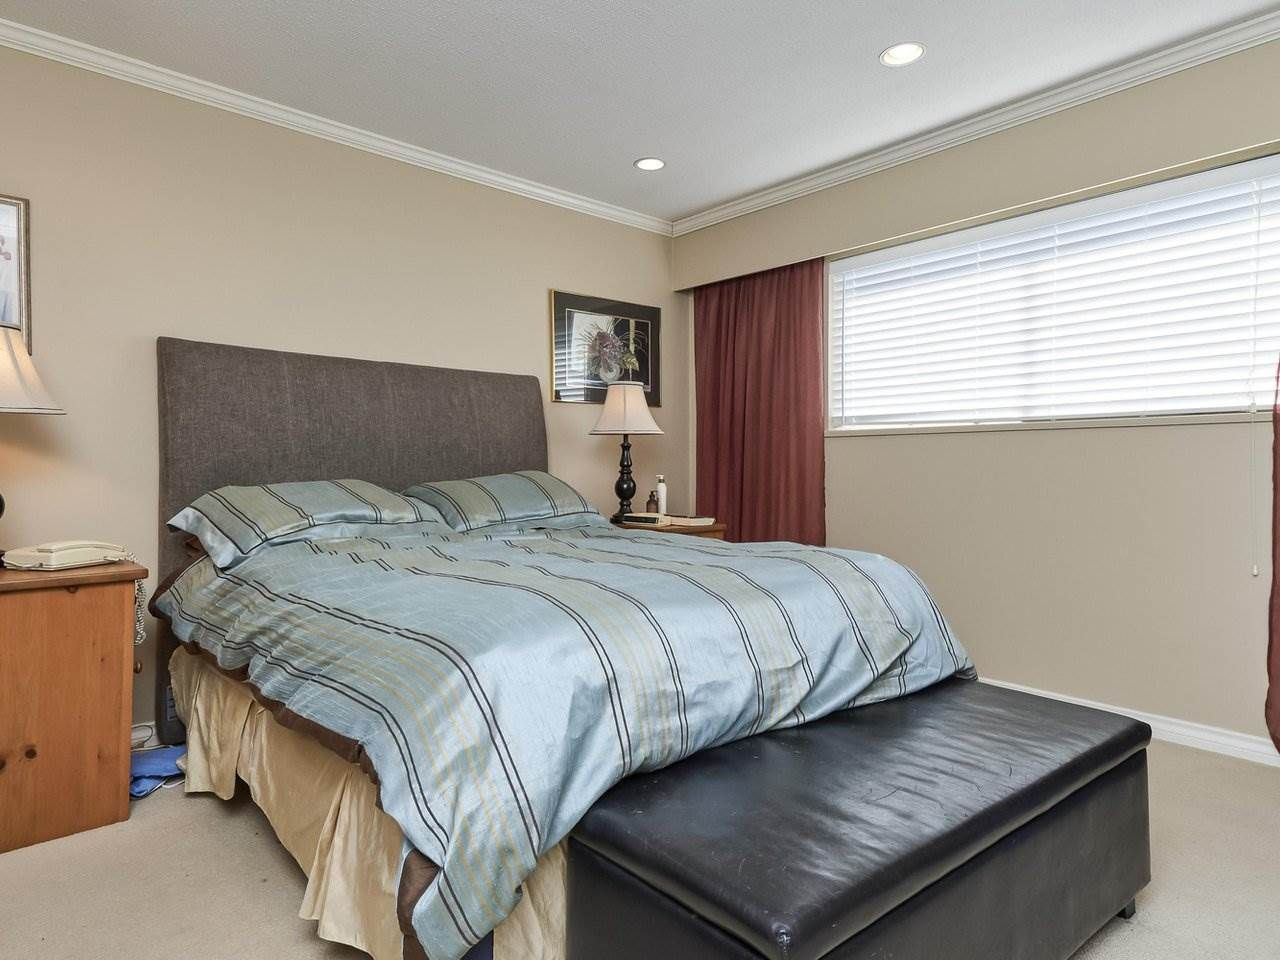 Photo 16: Photos: 4880 FORTUNE AVENUE in Richmond: Steveston North House for sale : MLS®# R2435063